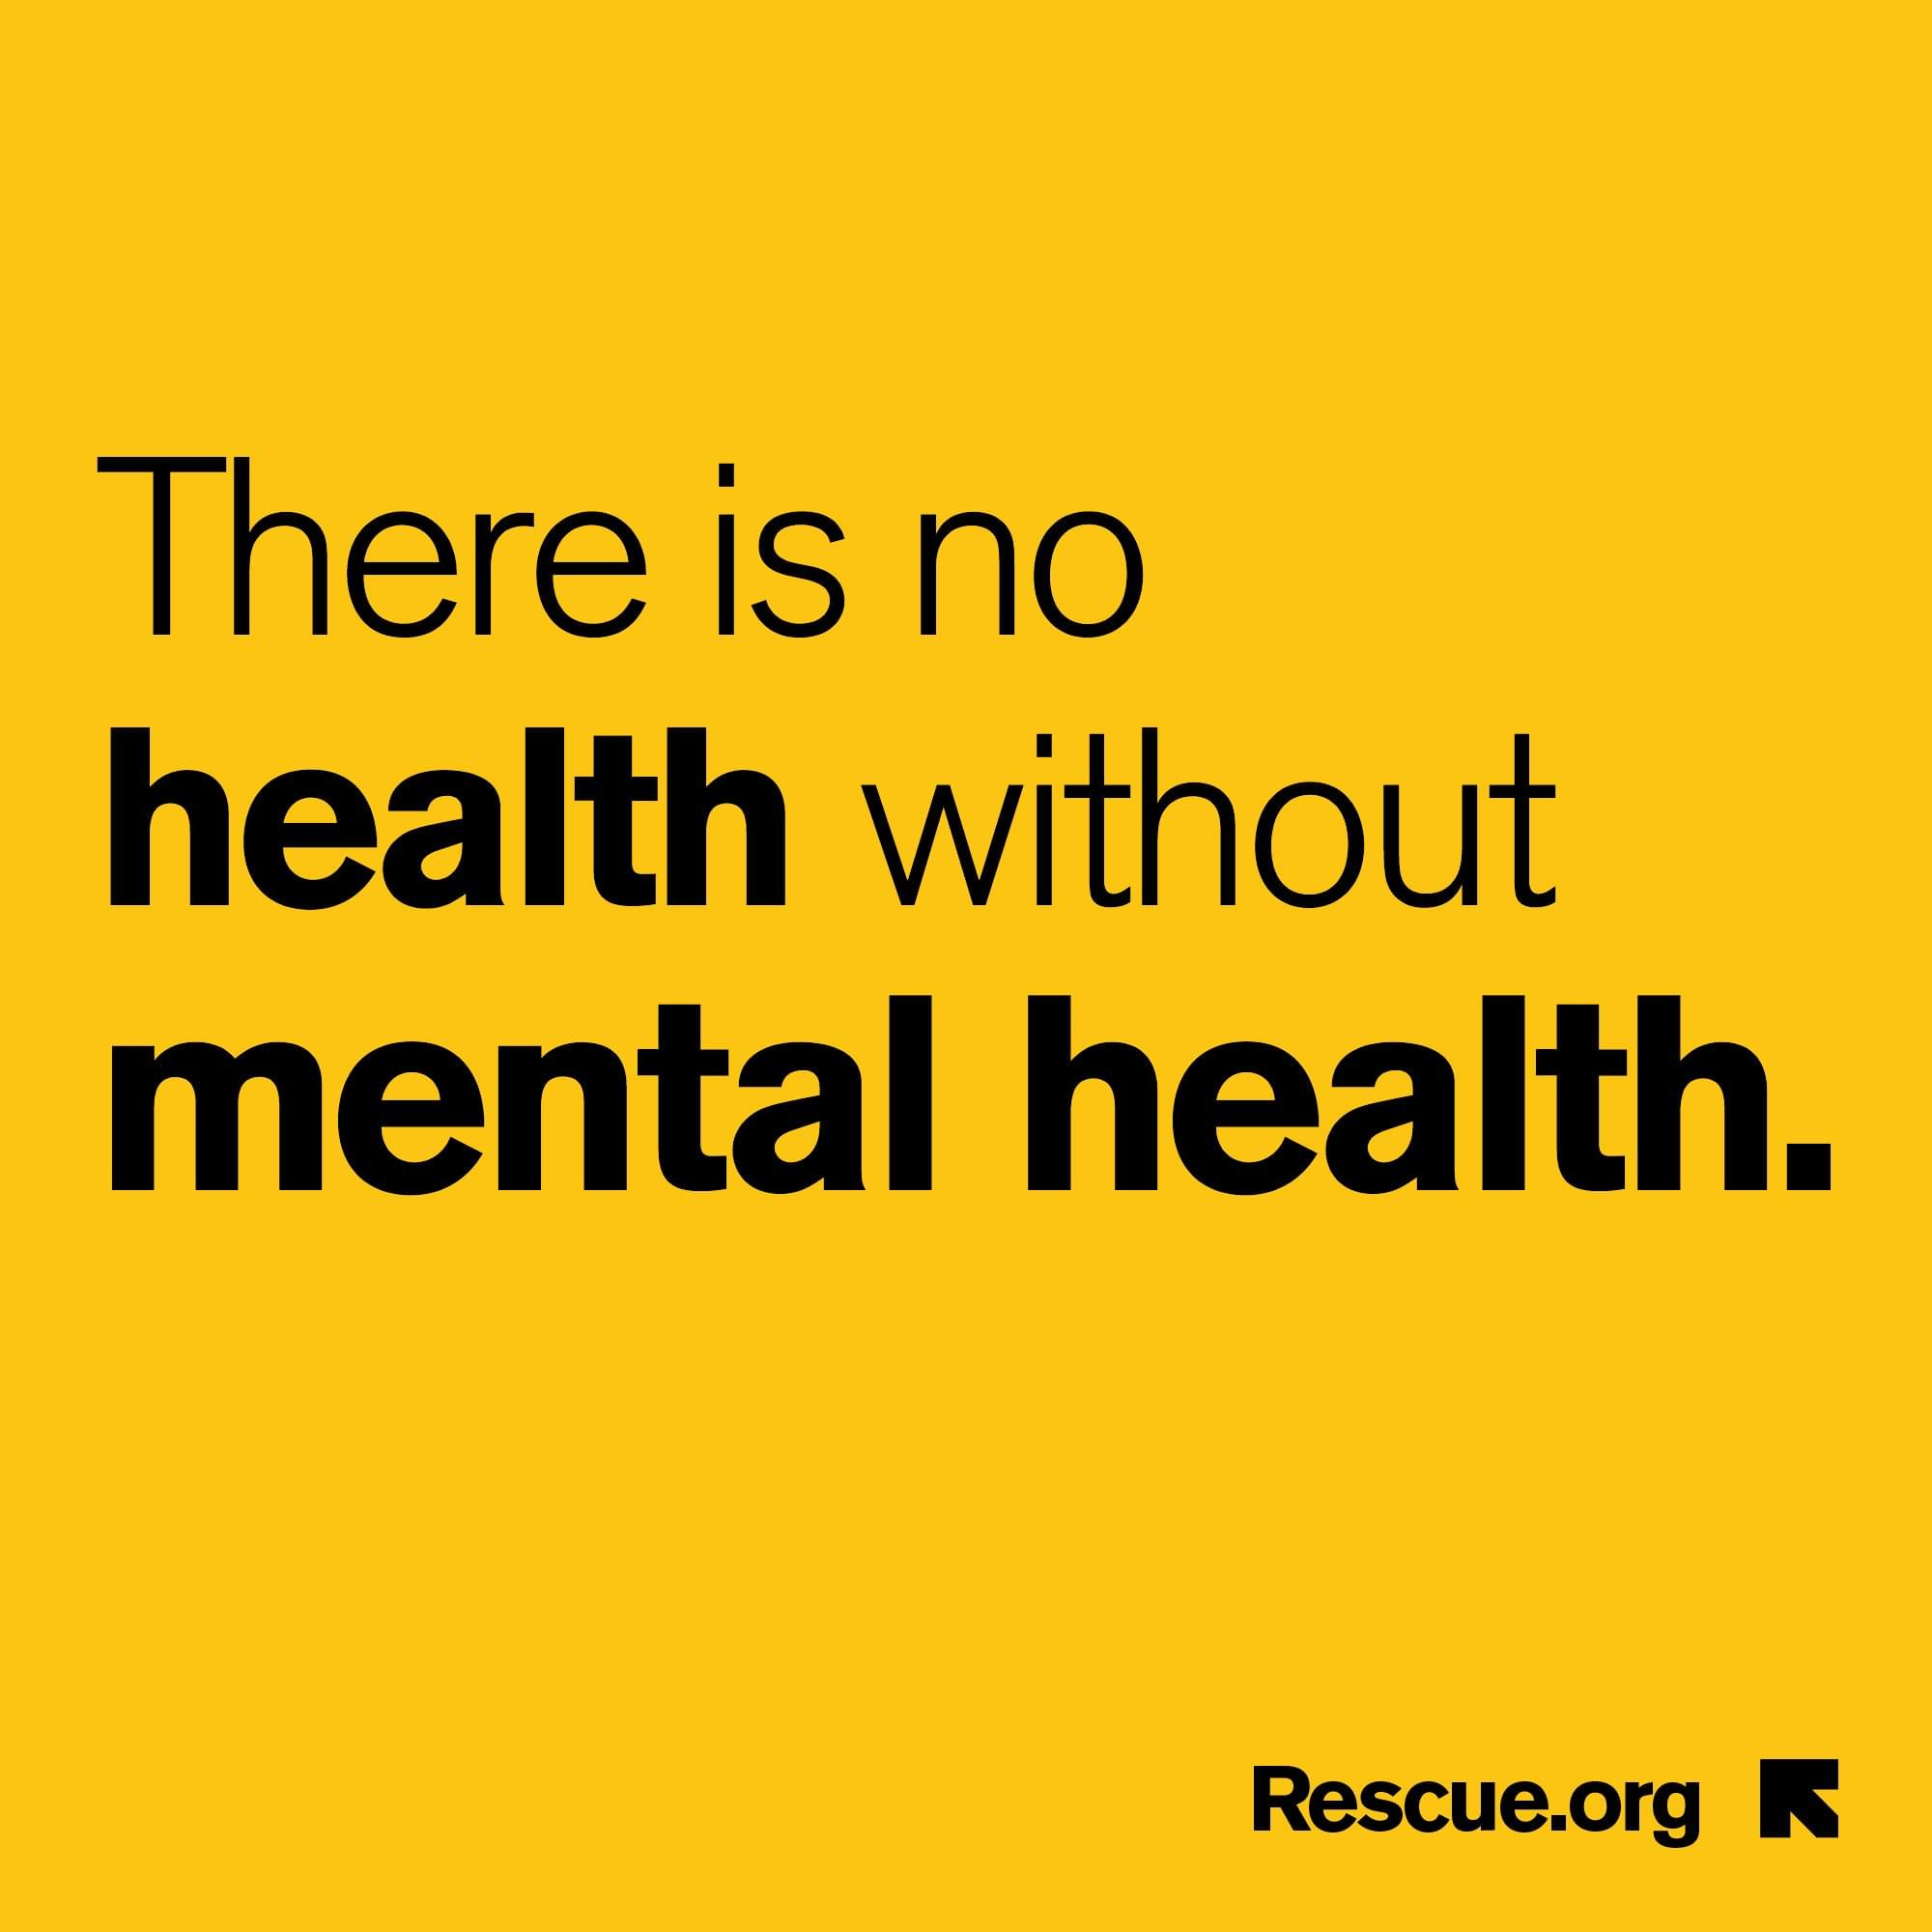 There is no health without mental health.